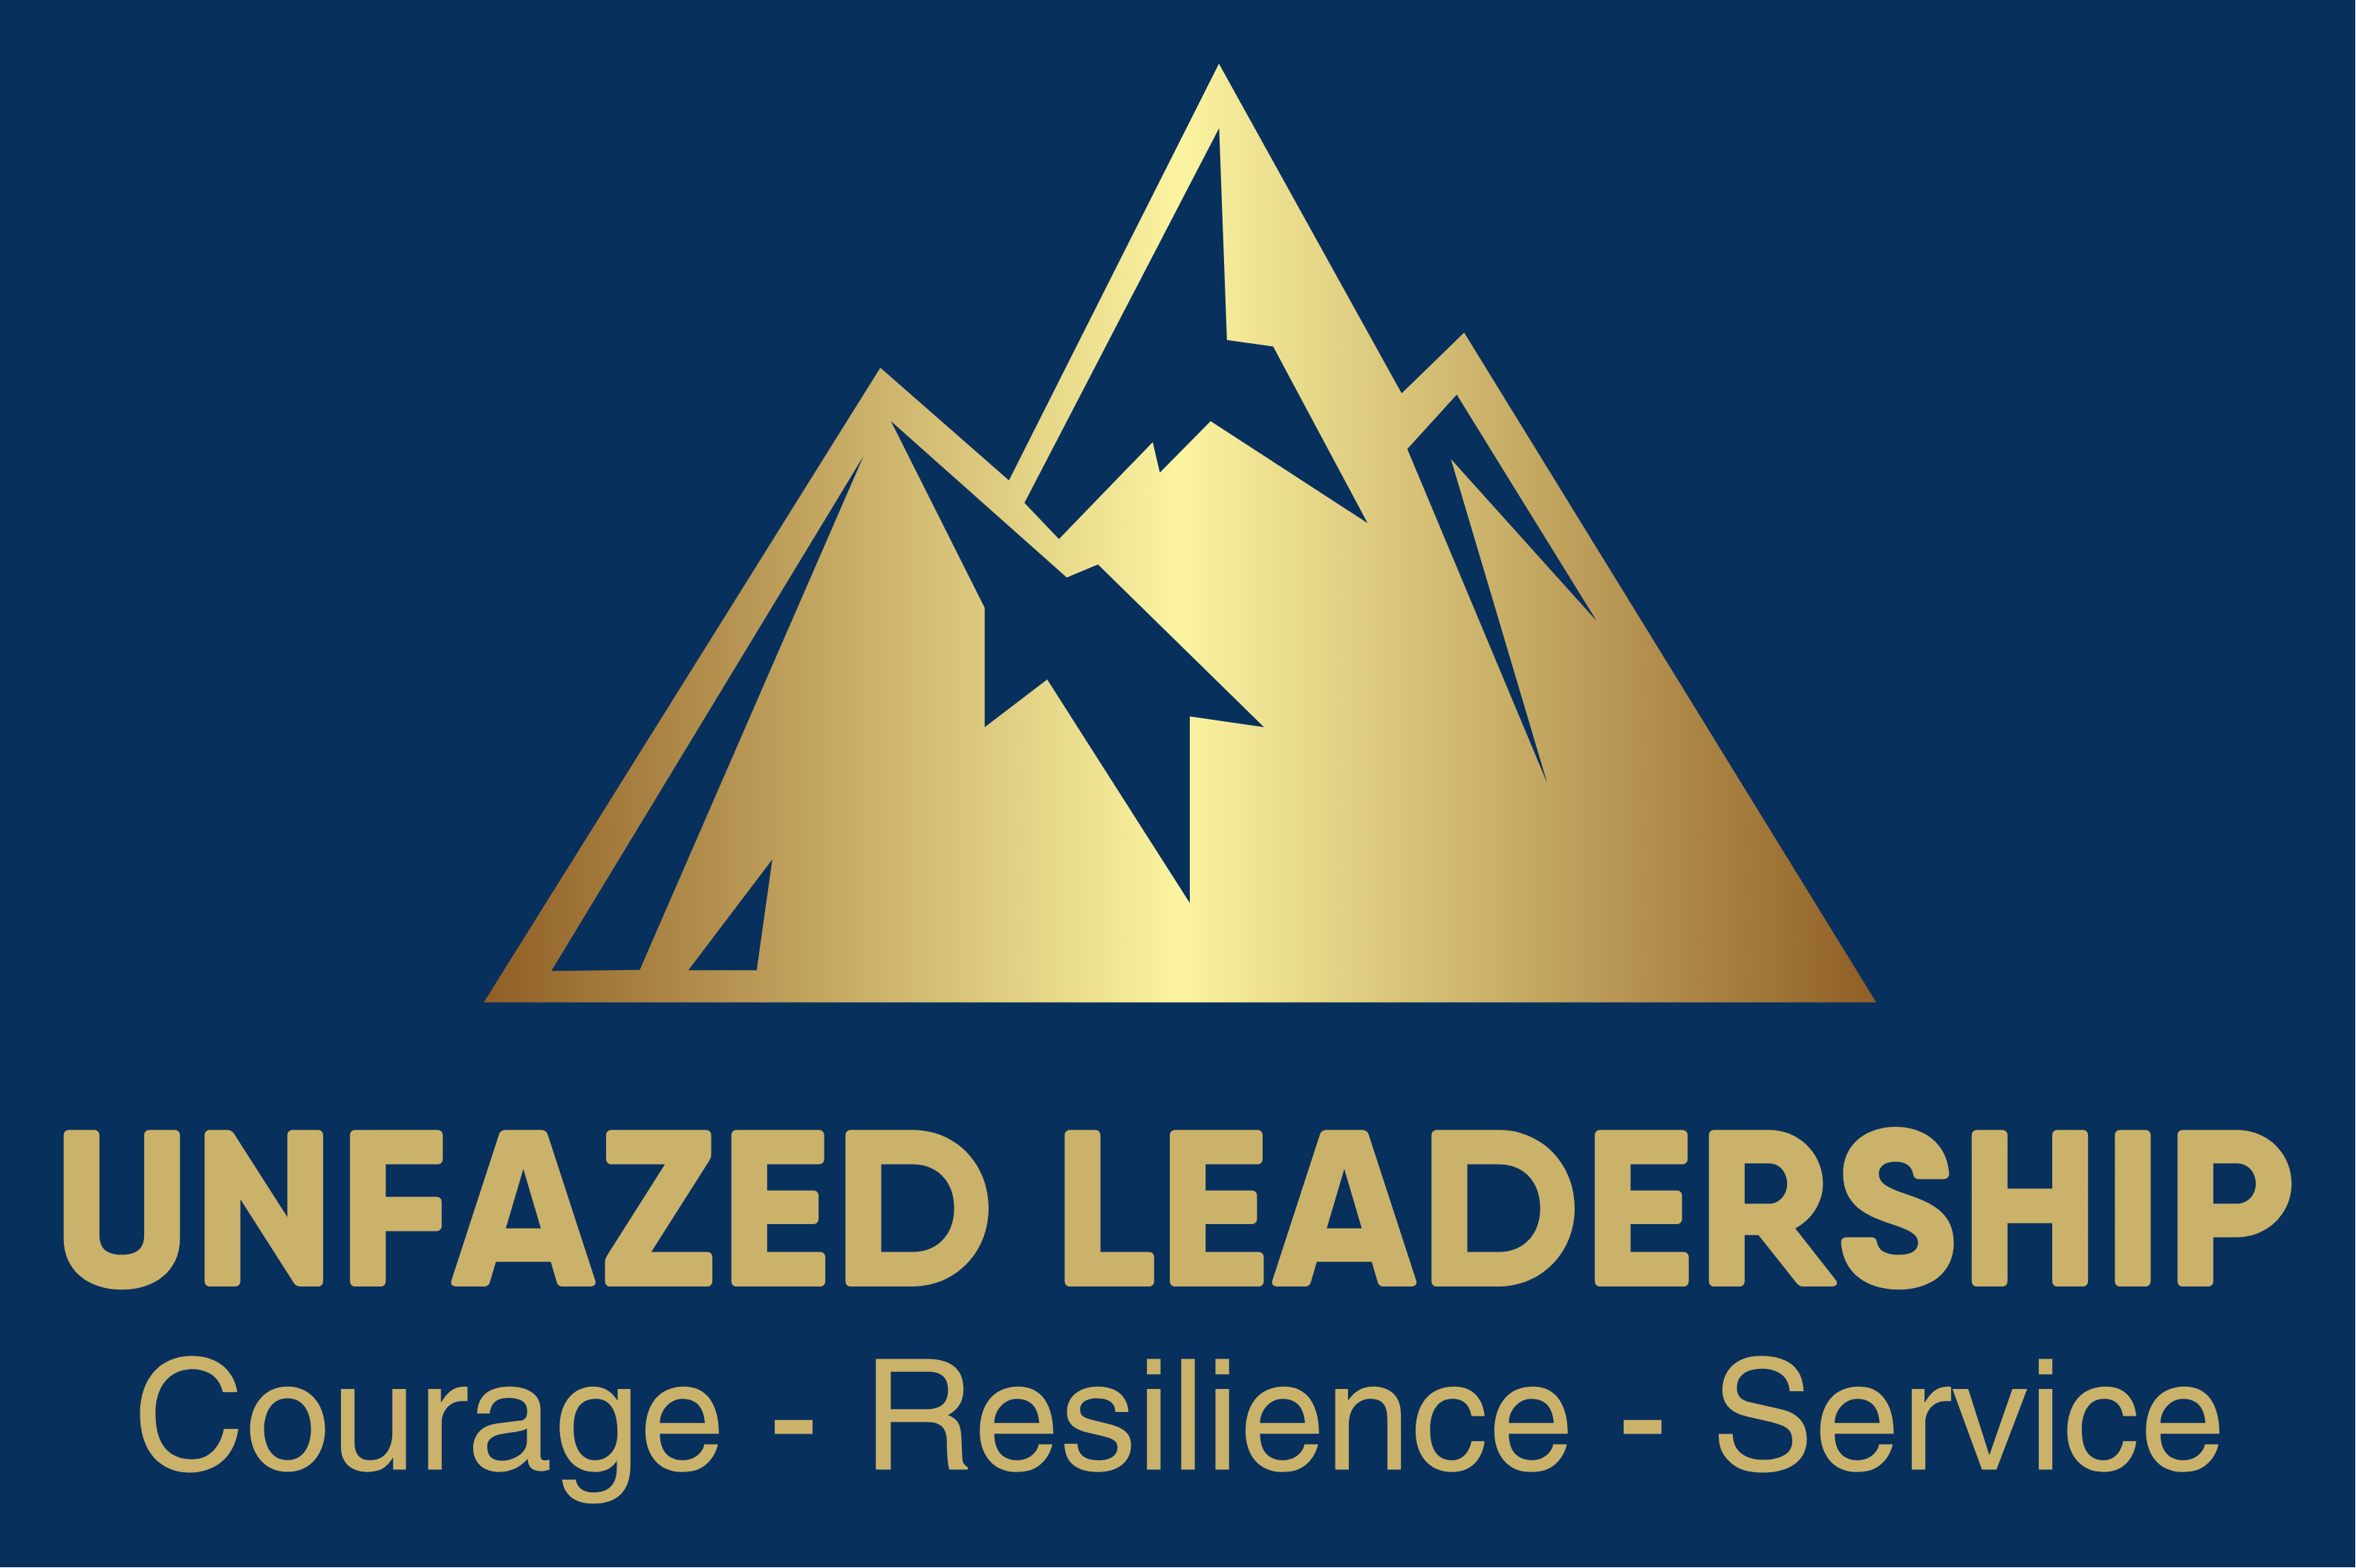 Ed O'Neal – Unfazed Leadership LLC